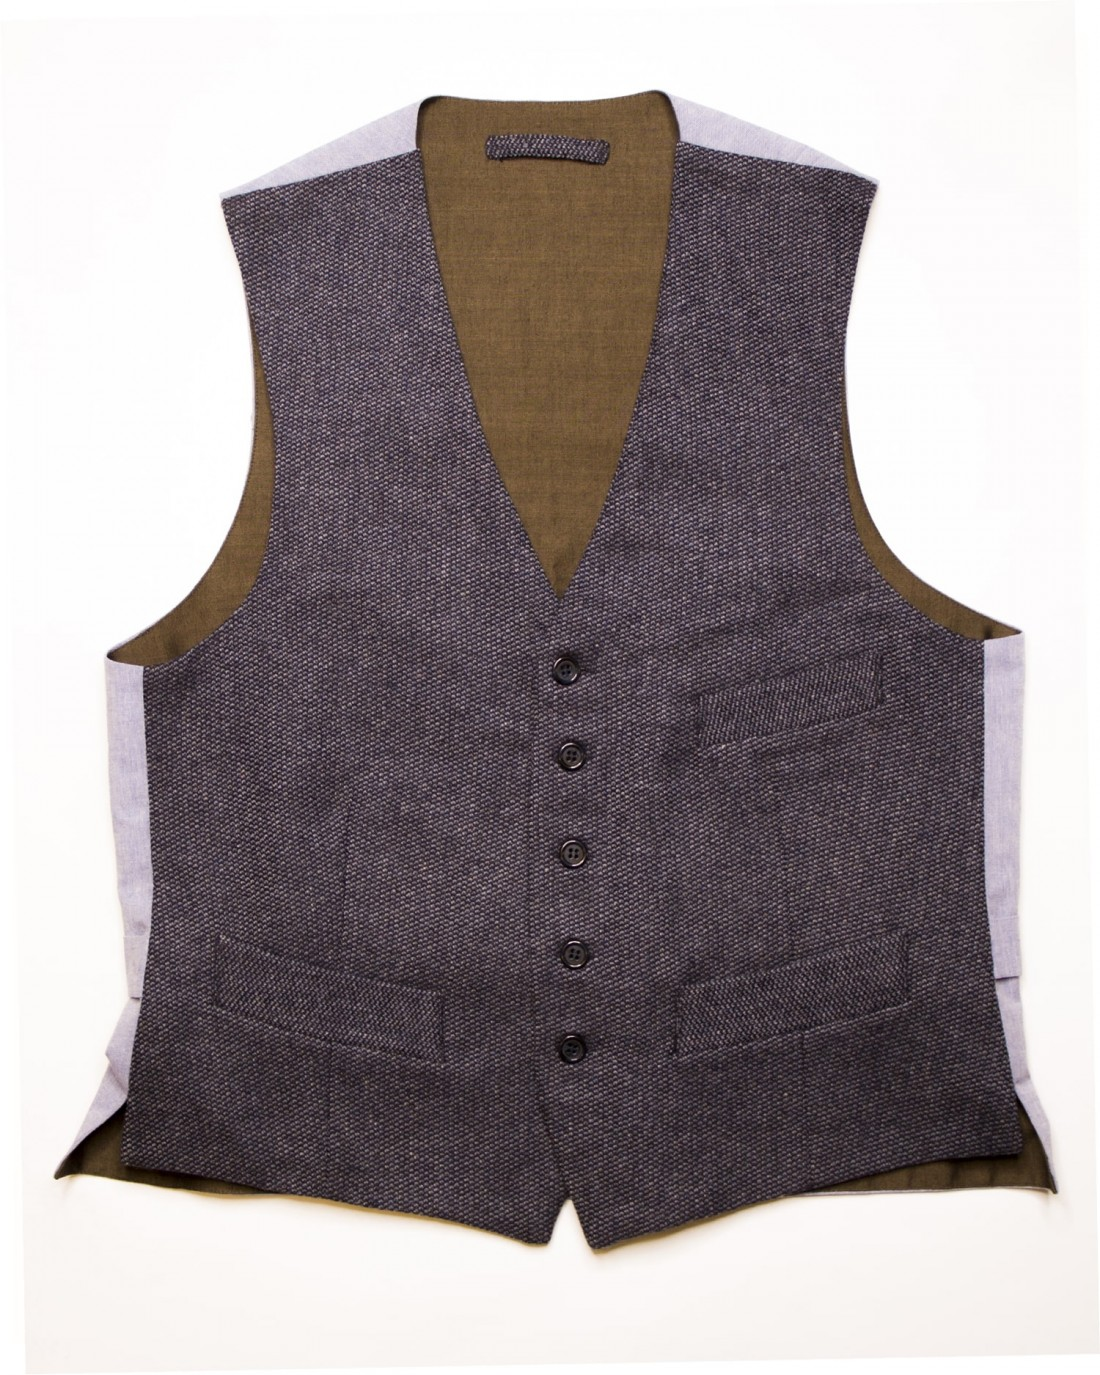 Mario Vest: Men's casual vest in blue and azure punctuate wool fabric